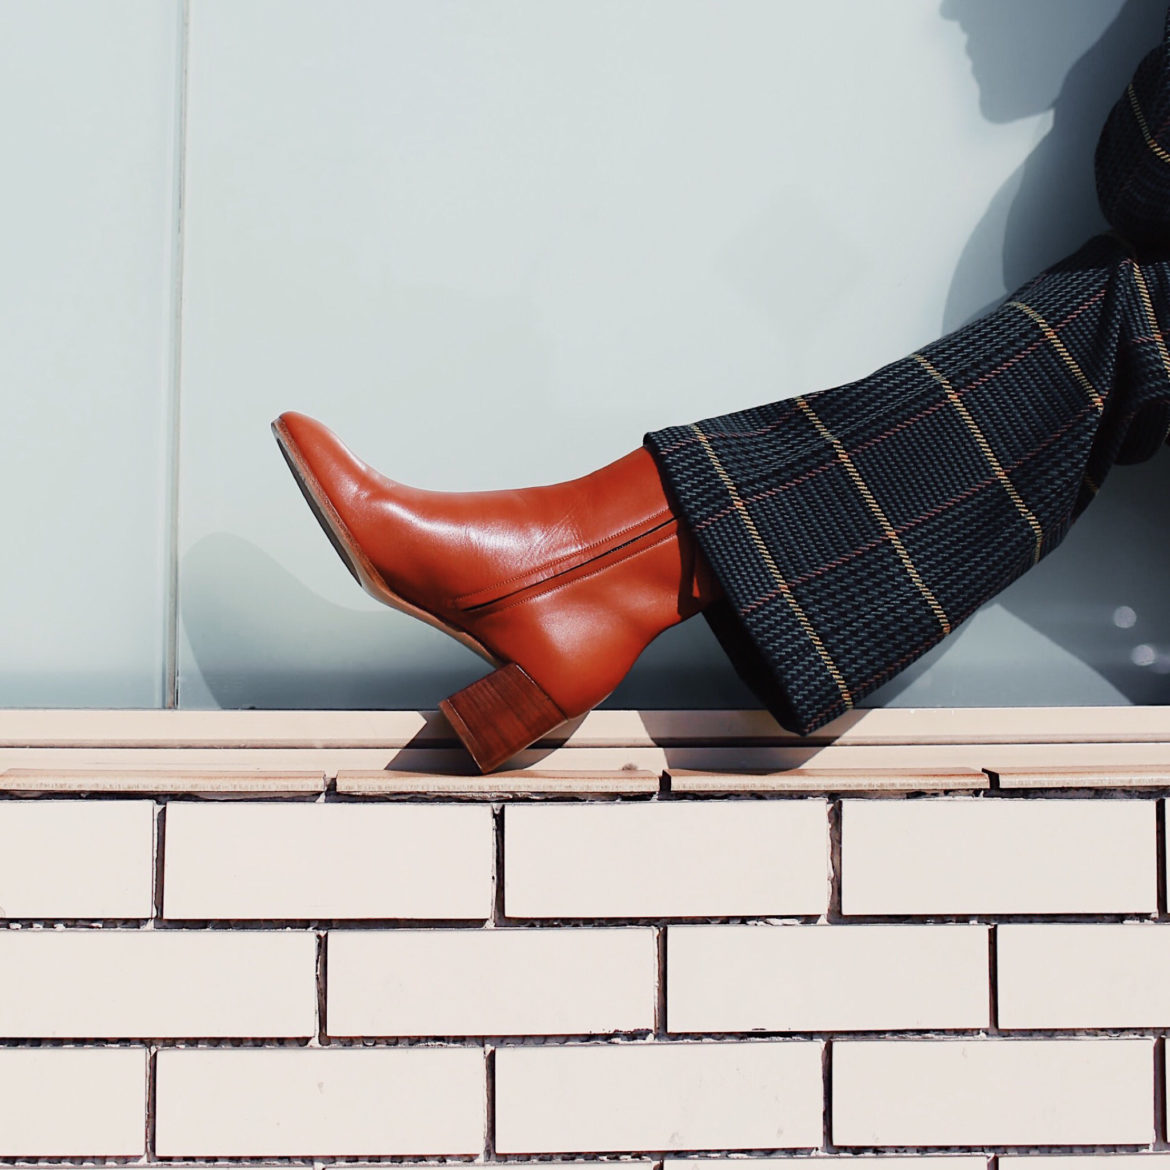 The Corsa The Lustro 2019 Winter shoes 2019: M.Gemi Luxurious, Stylish and Comfortable ankle boots The Corsa. M.Gemi coupon code and more on Modersvp.com